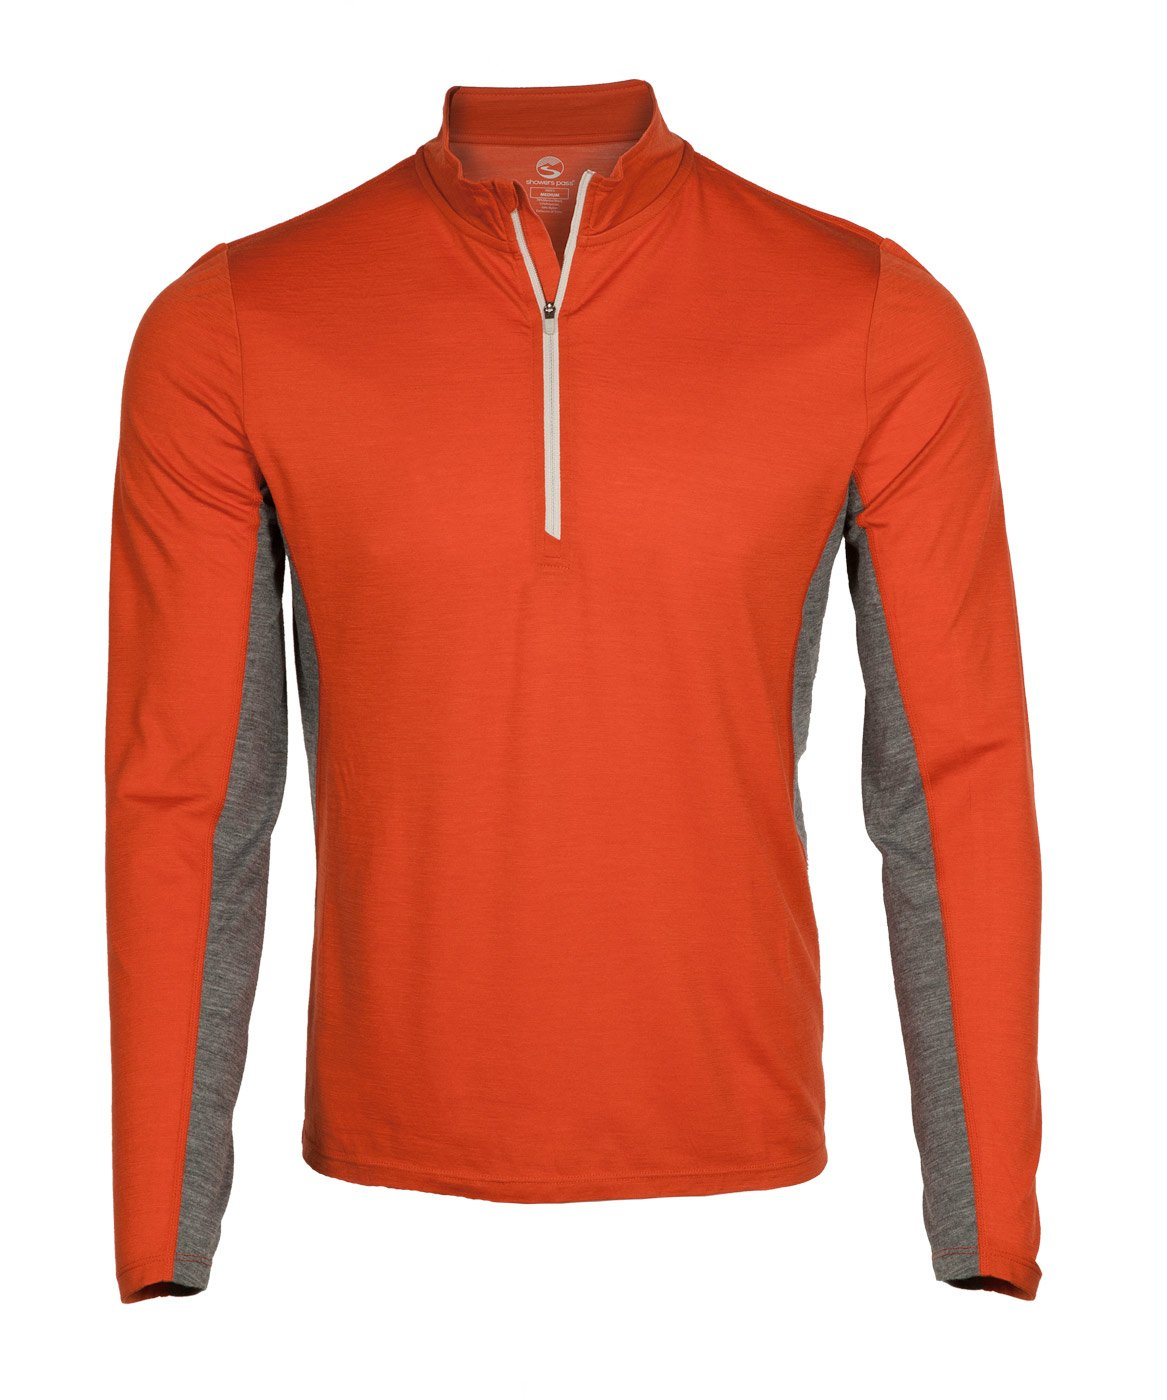 6dab8244 Men's Ridgeline Half-Zip LS Shirt | Showers Pass